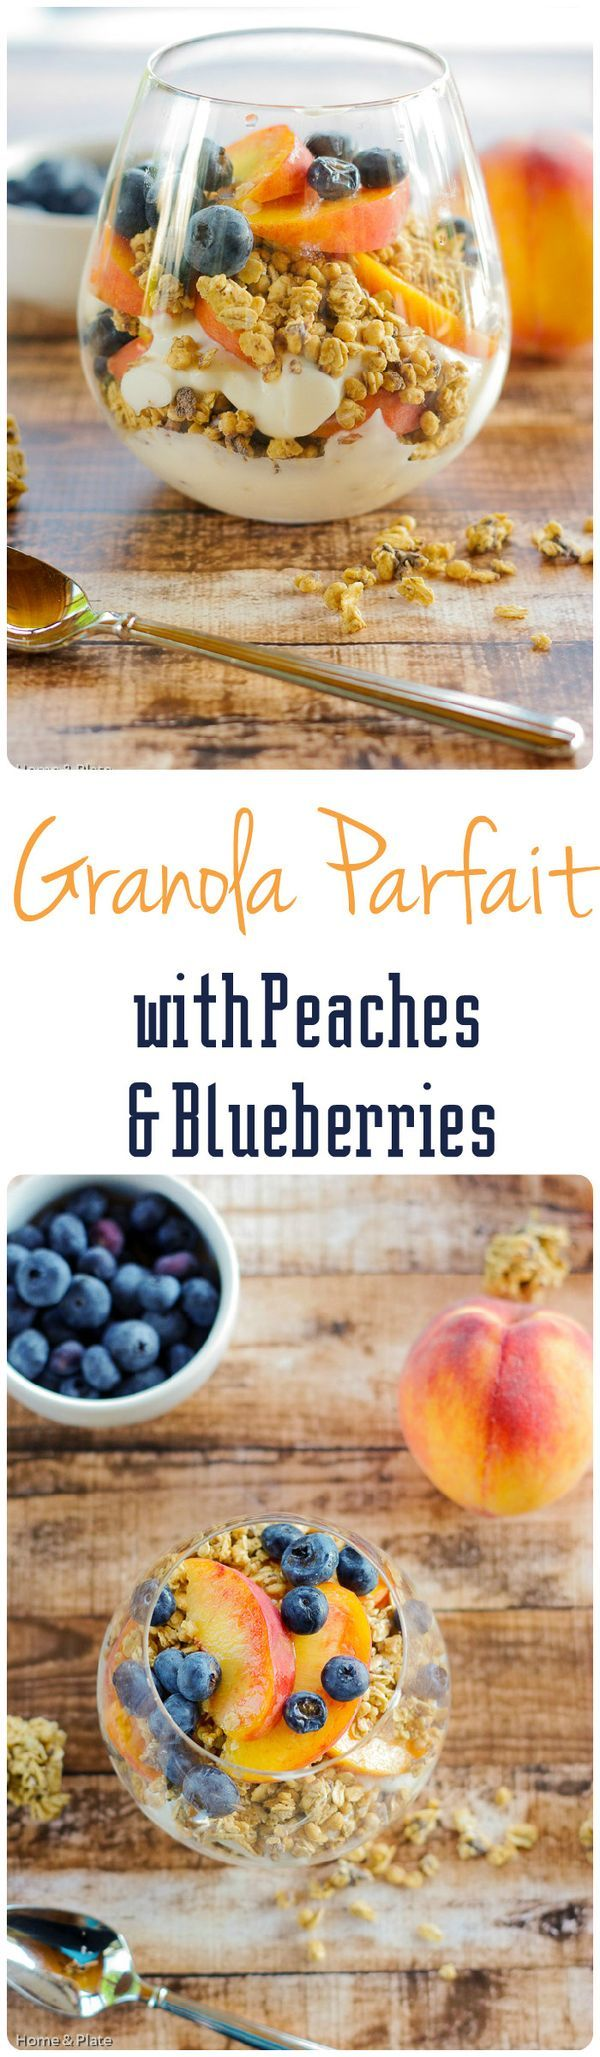 1000+ images about Healthy Breakfast Recipes on Pinterest | Overnight ...